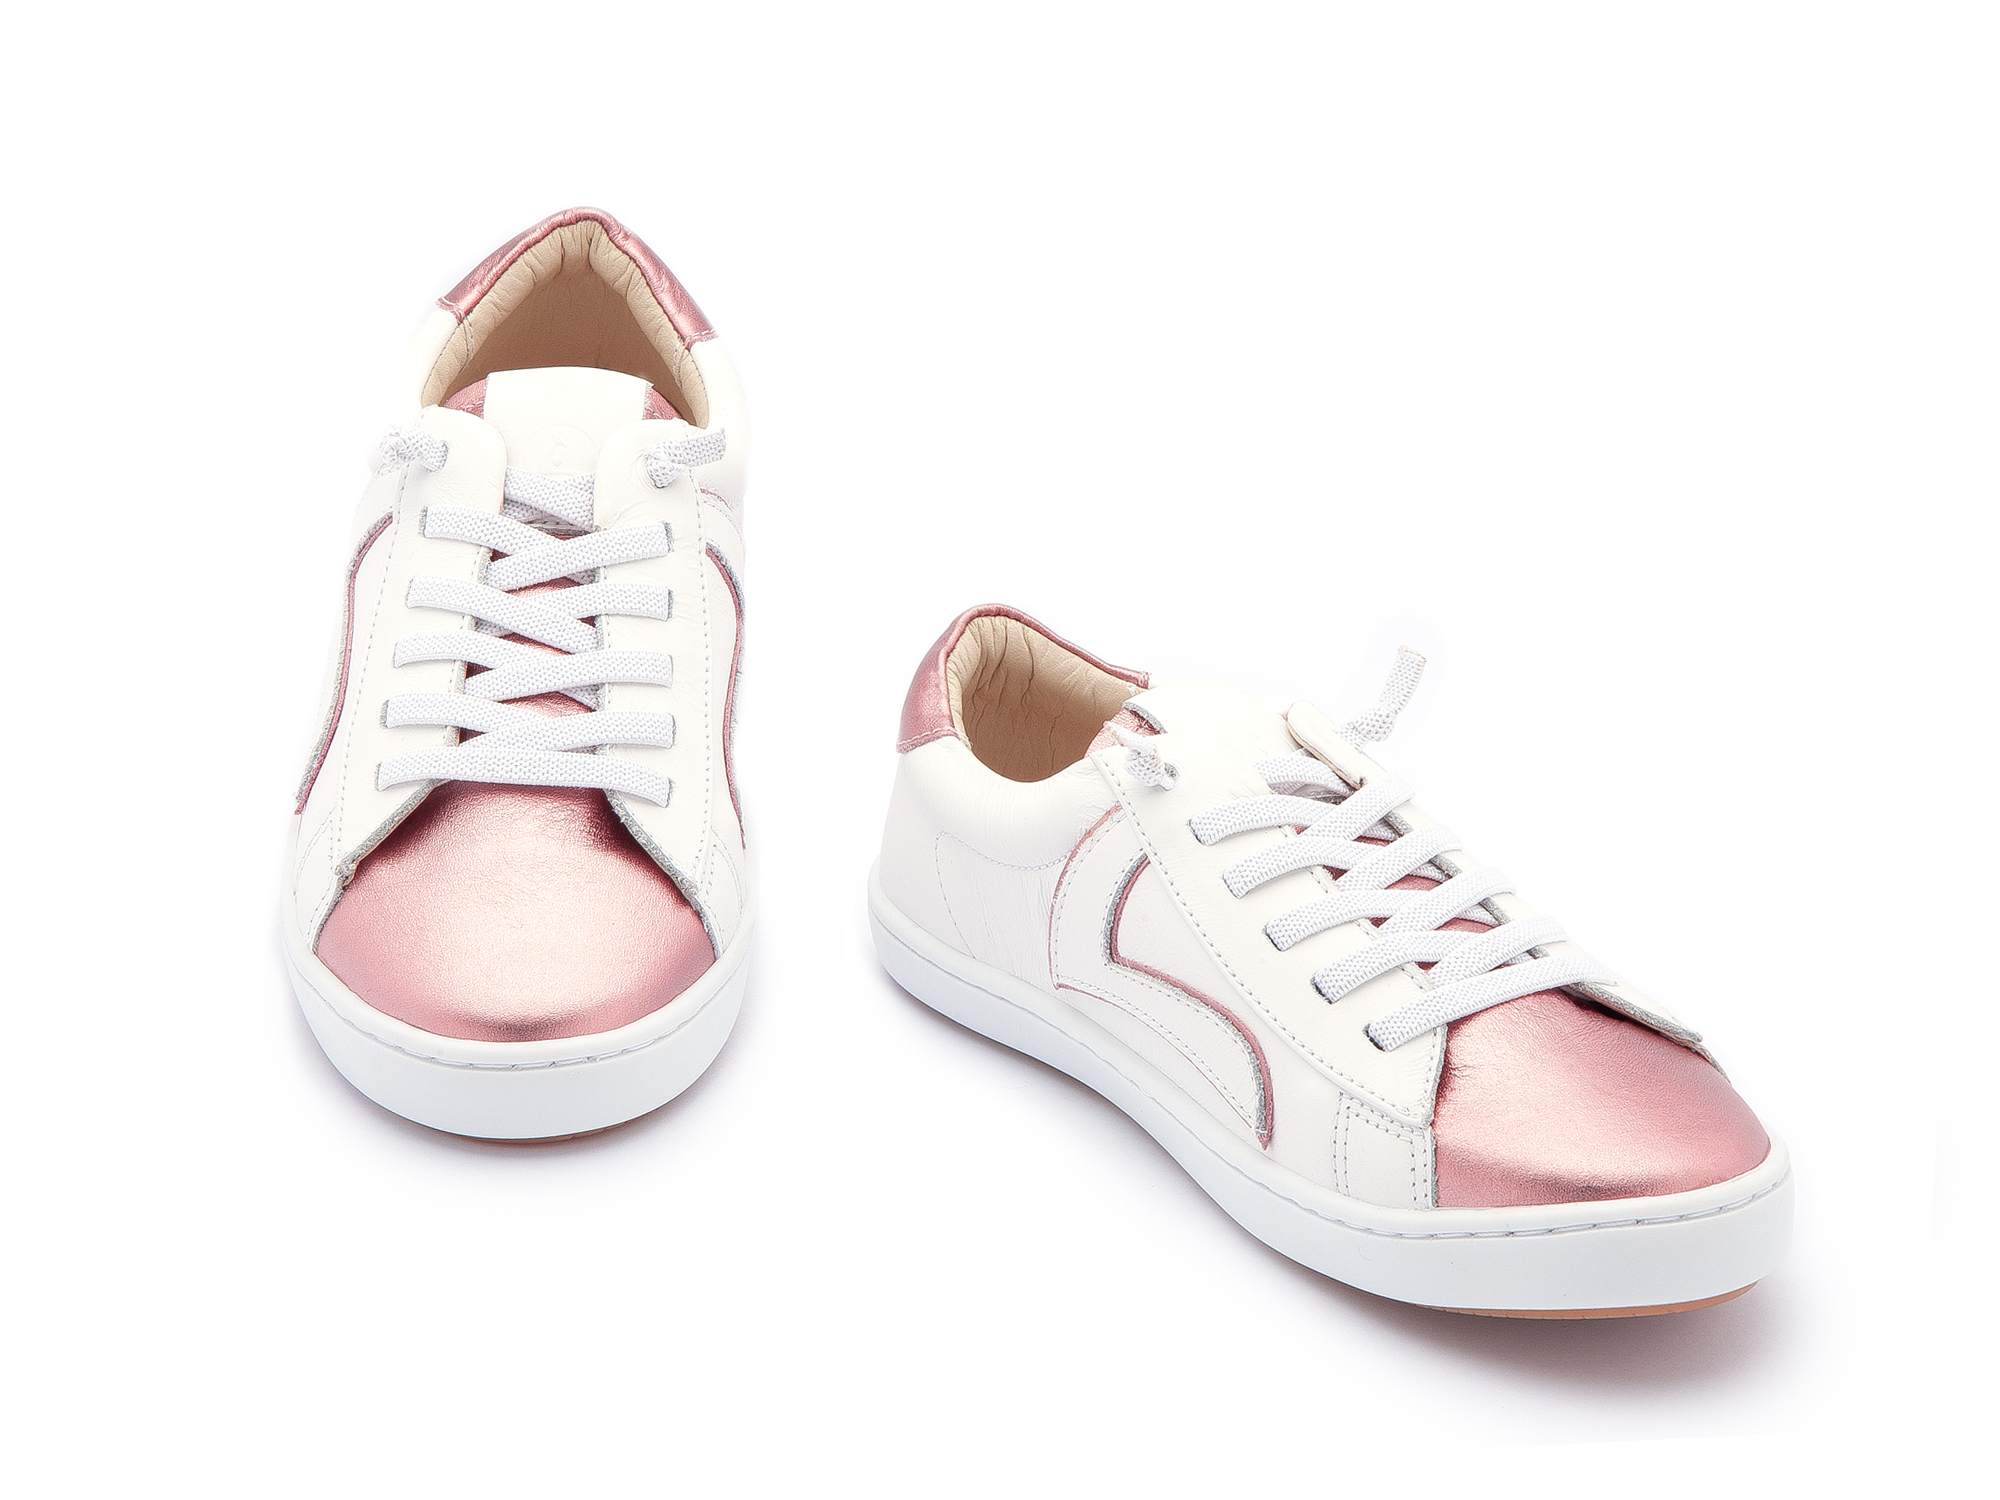 Tênis Skid White/ Rose Gold Junior 4 à 8 anos - 1